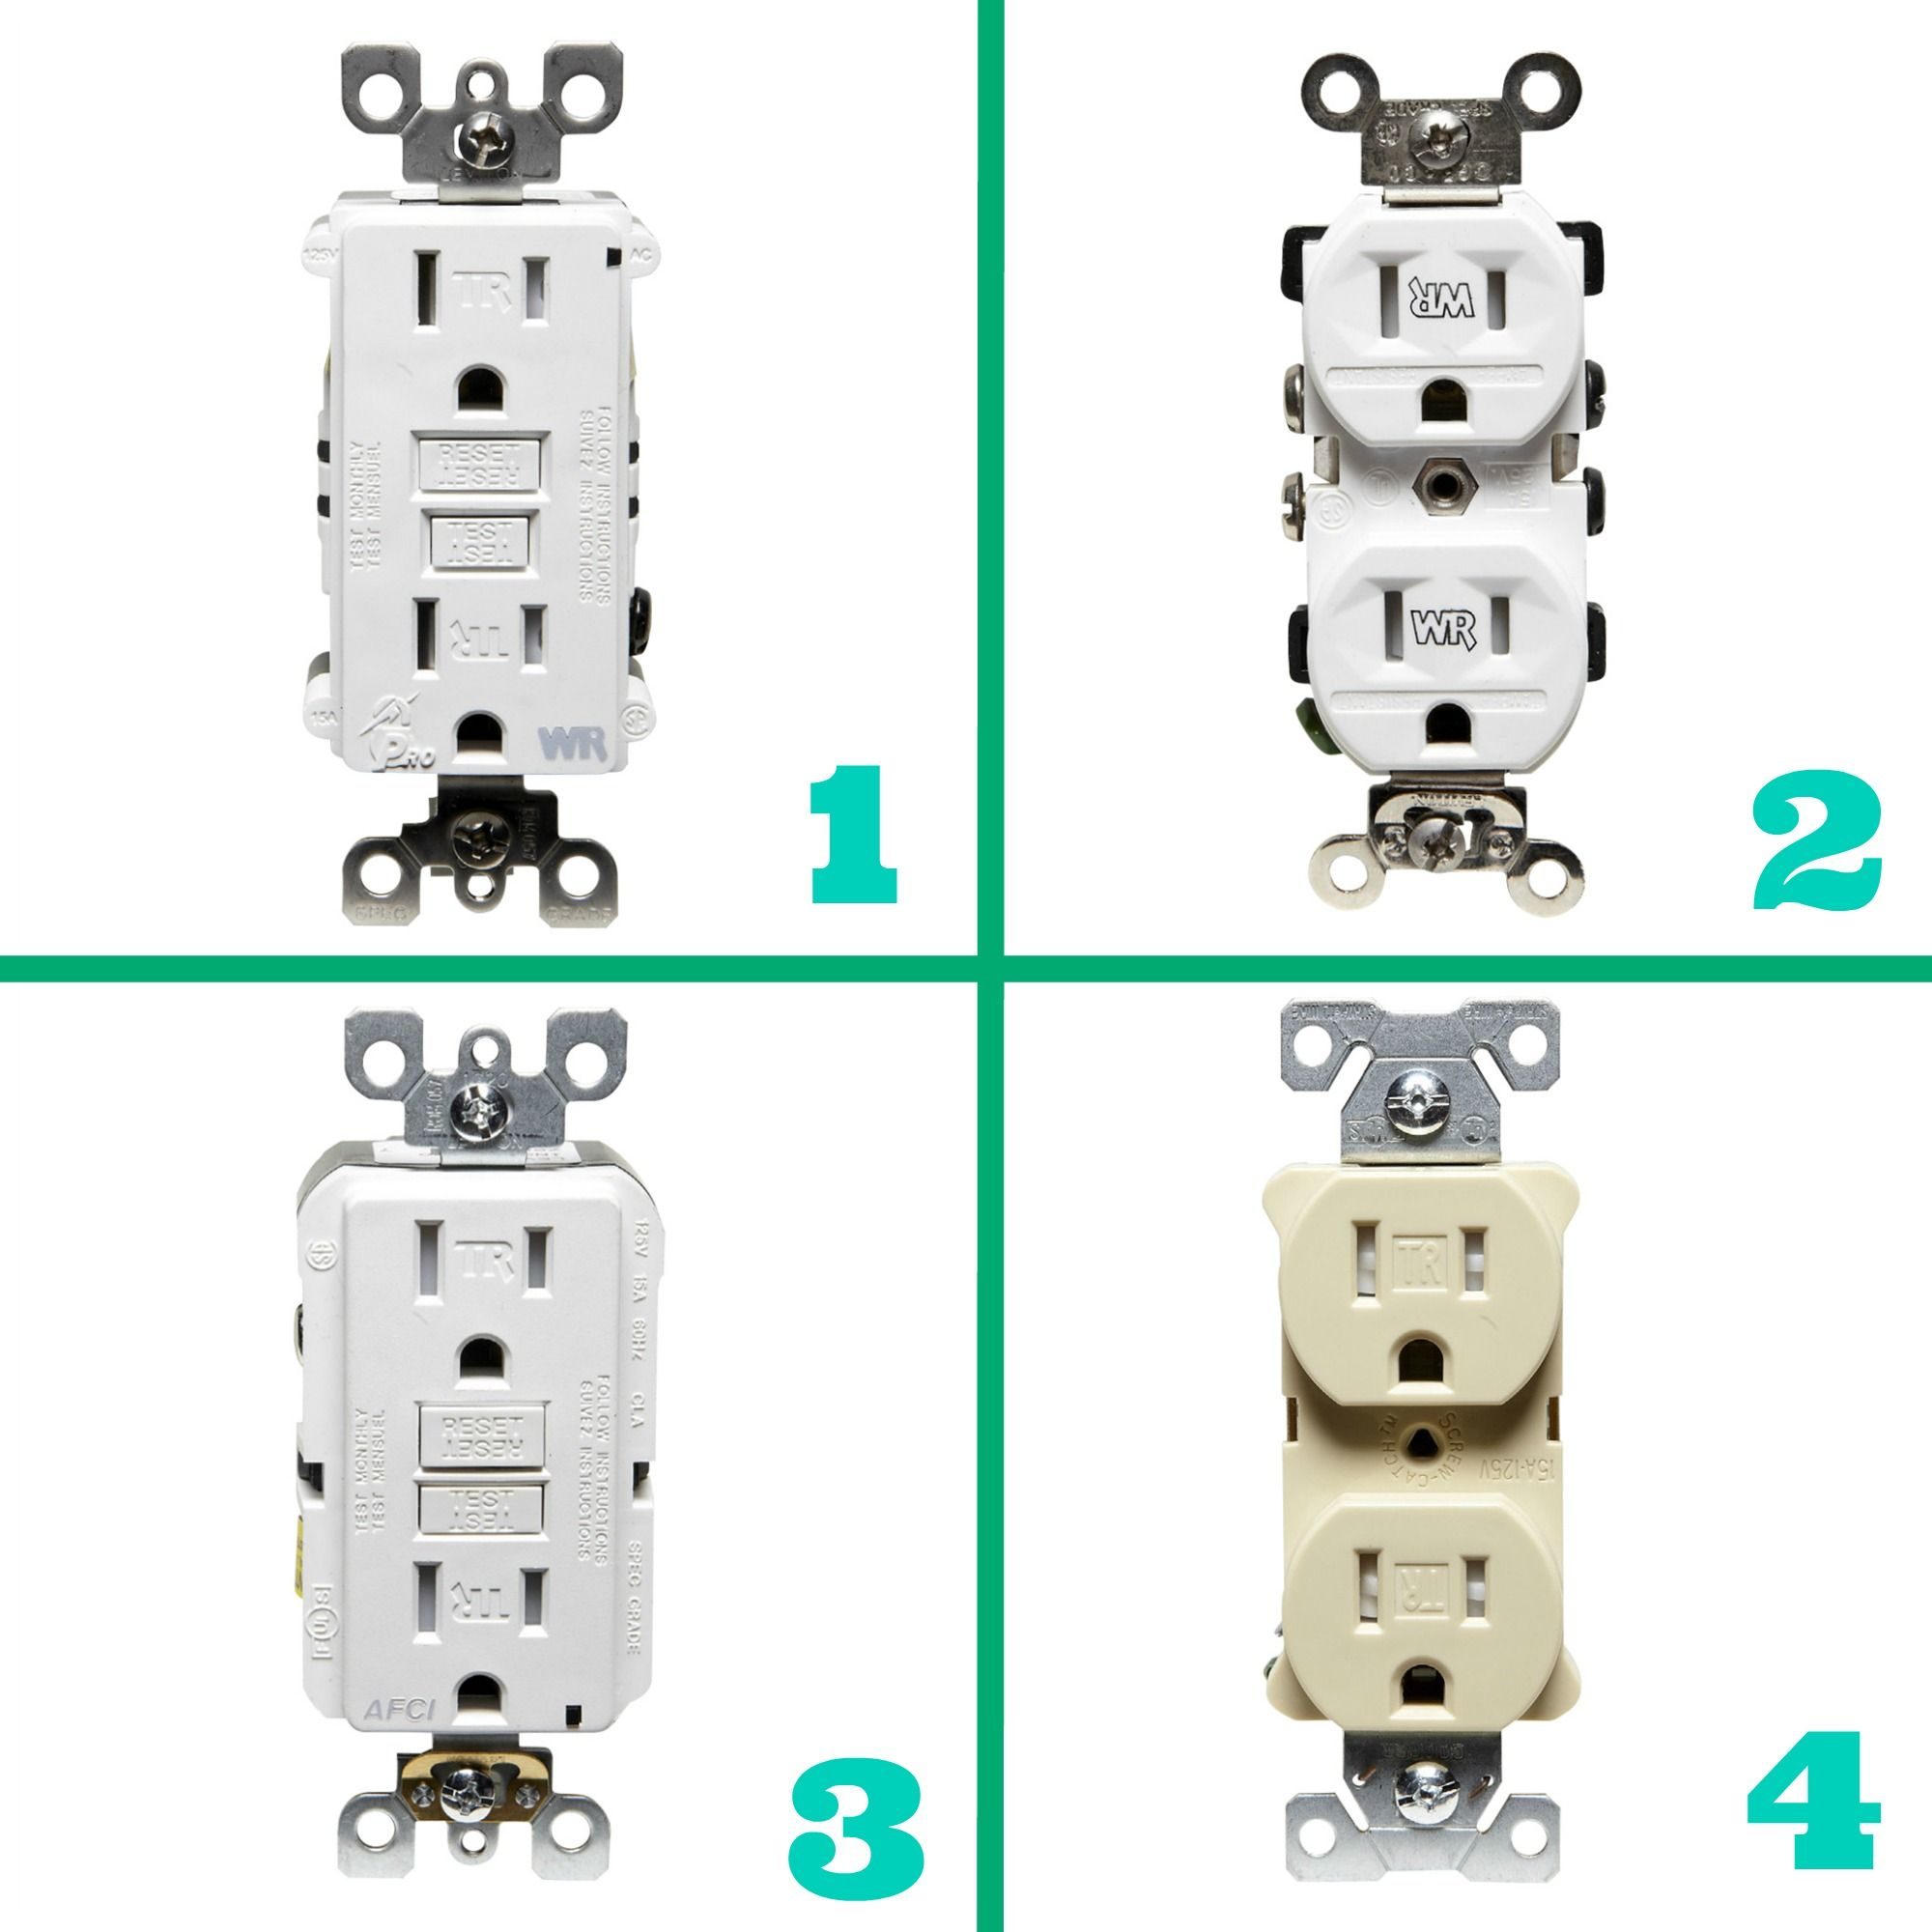 wiring outlets and switches the safe and easy way wire switch rh pinterest com electrical outlet connection types electrical outlet connection types